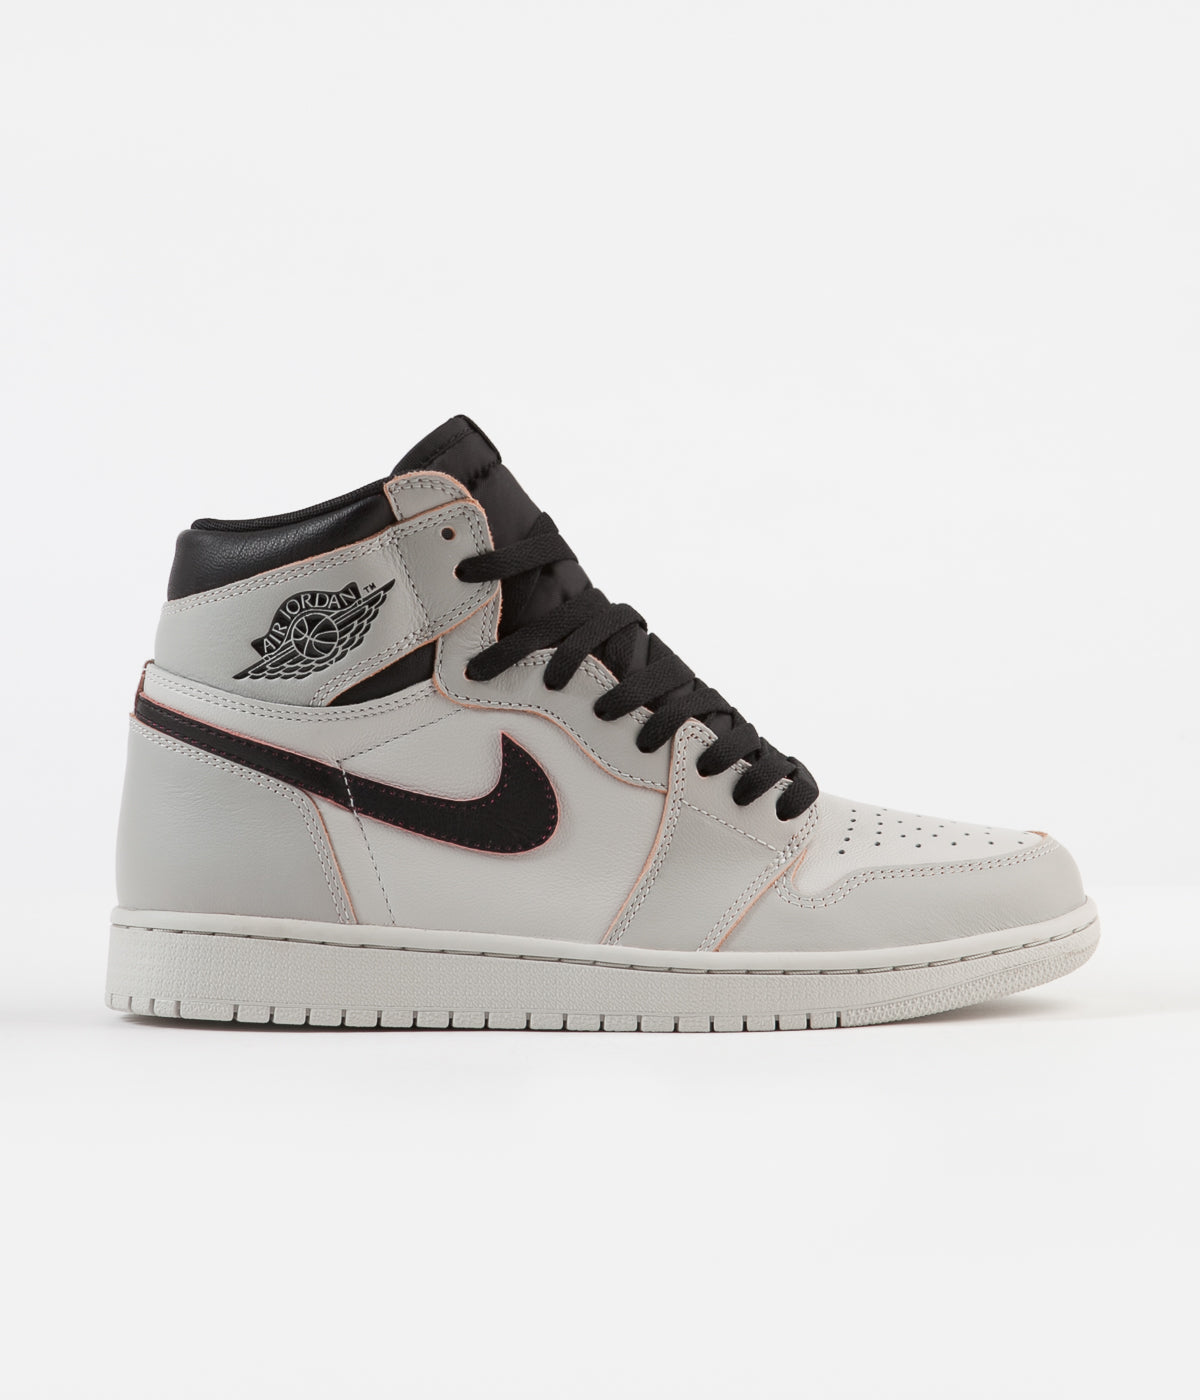 timeless design 554f8 85890 Nike SB Air Jordan 1 OG Defiant Shoes - Light Bone / Black ...